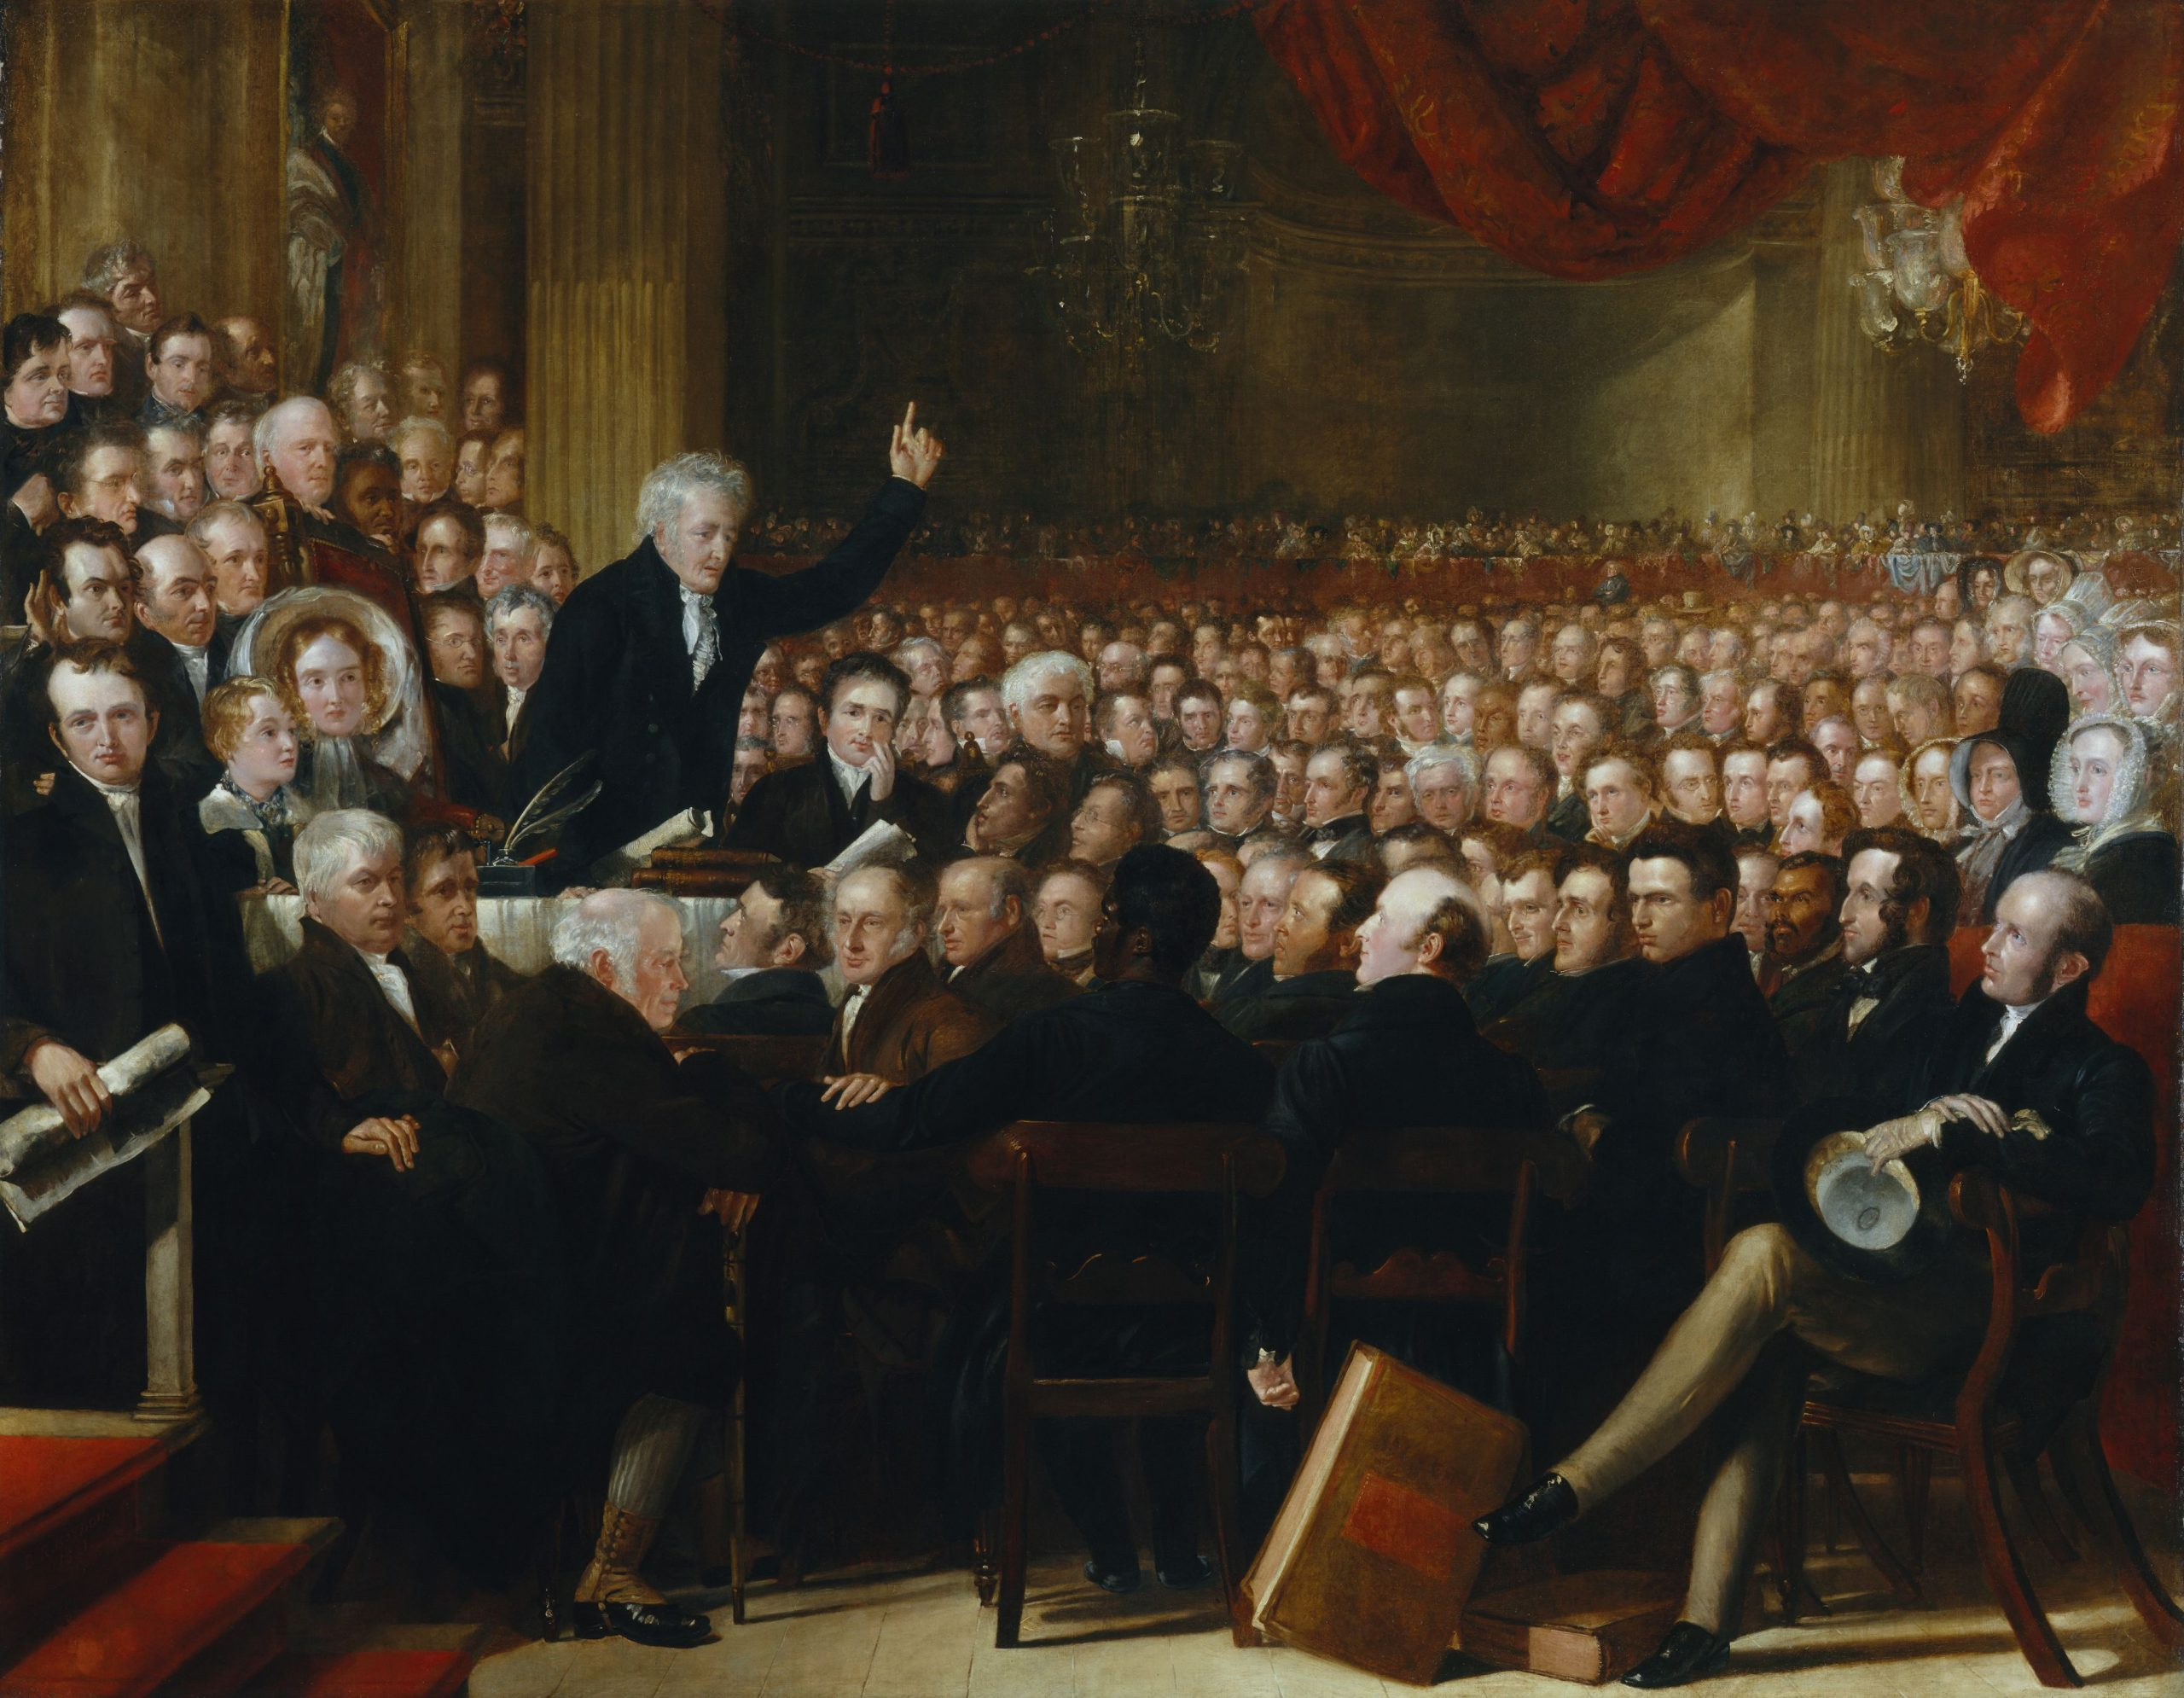 Thomas Clarkson addressing delegates of the Anti-Slavery Society Convention in 1840.